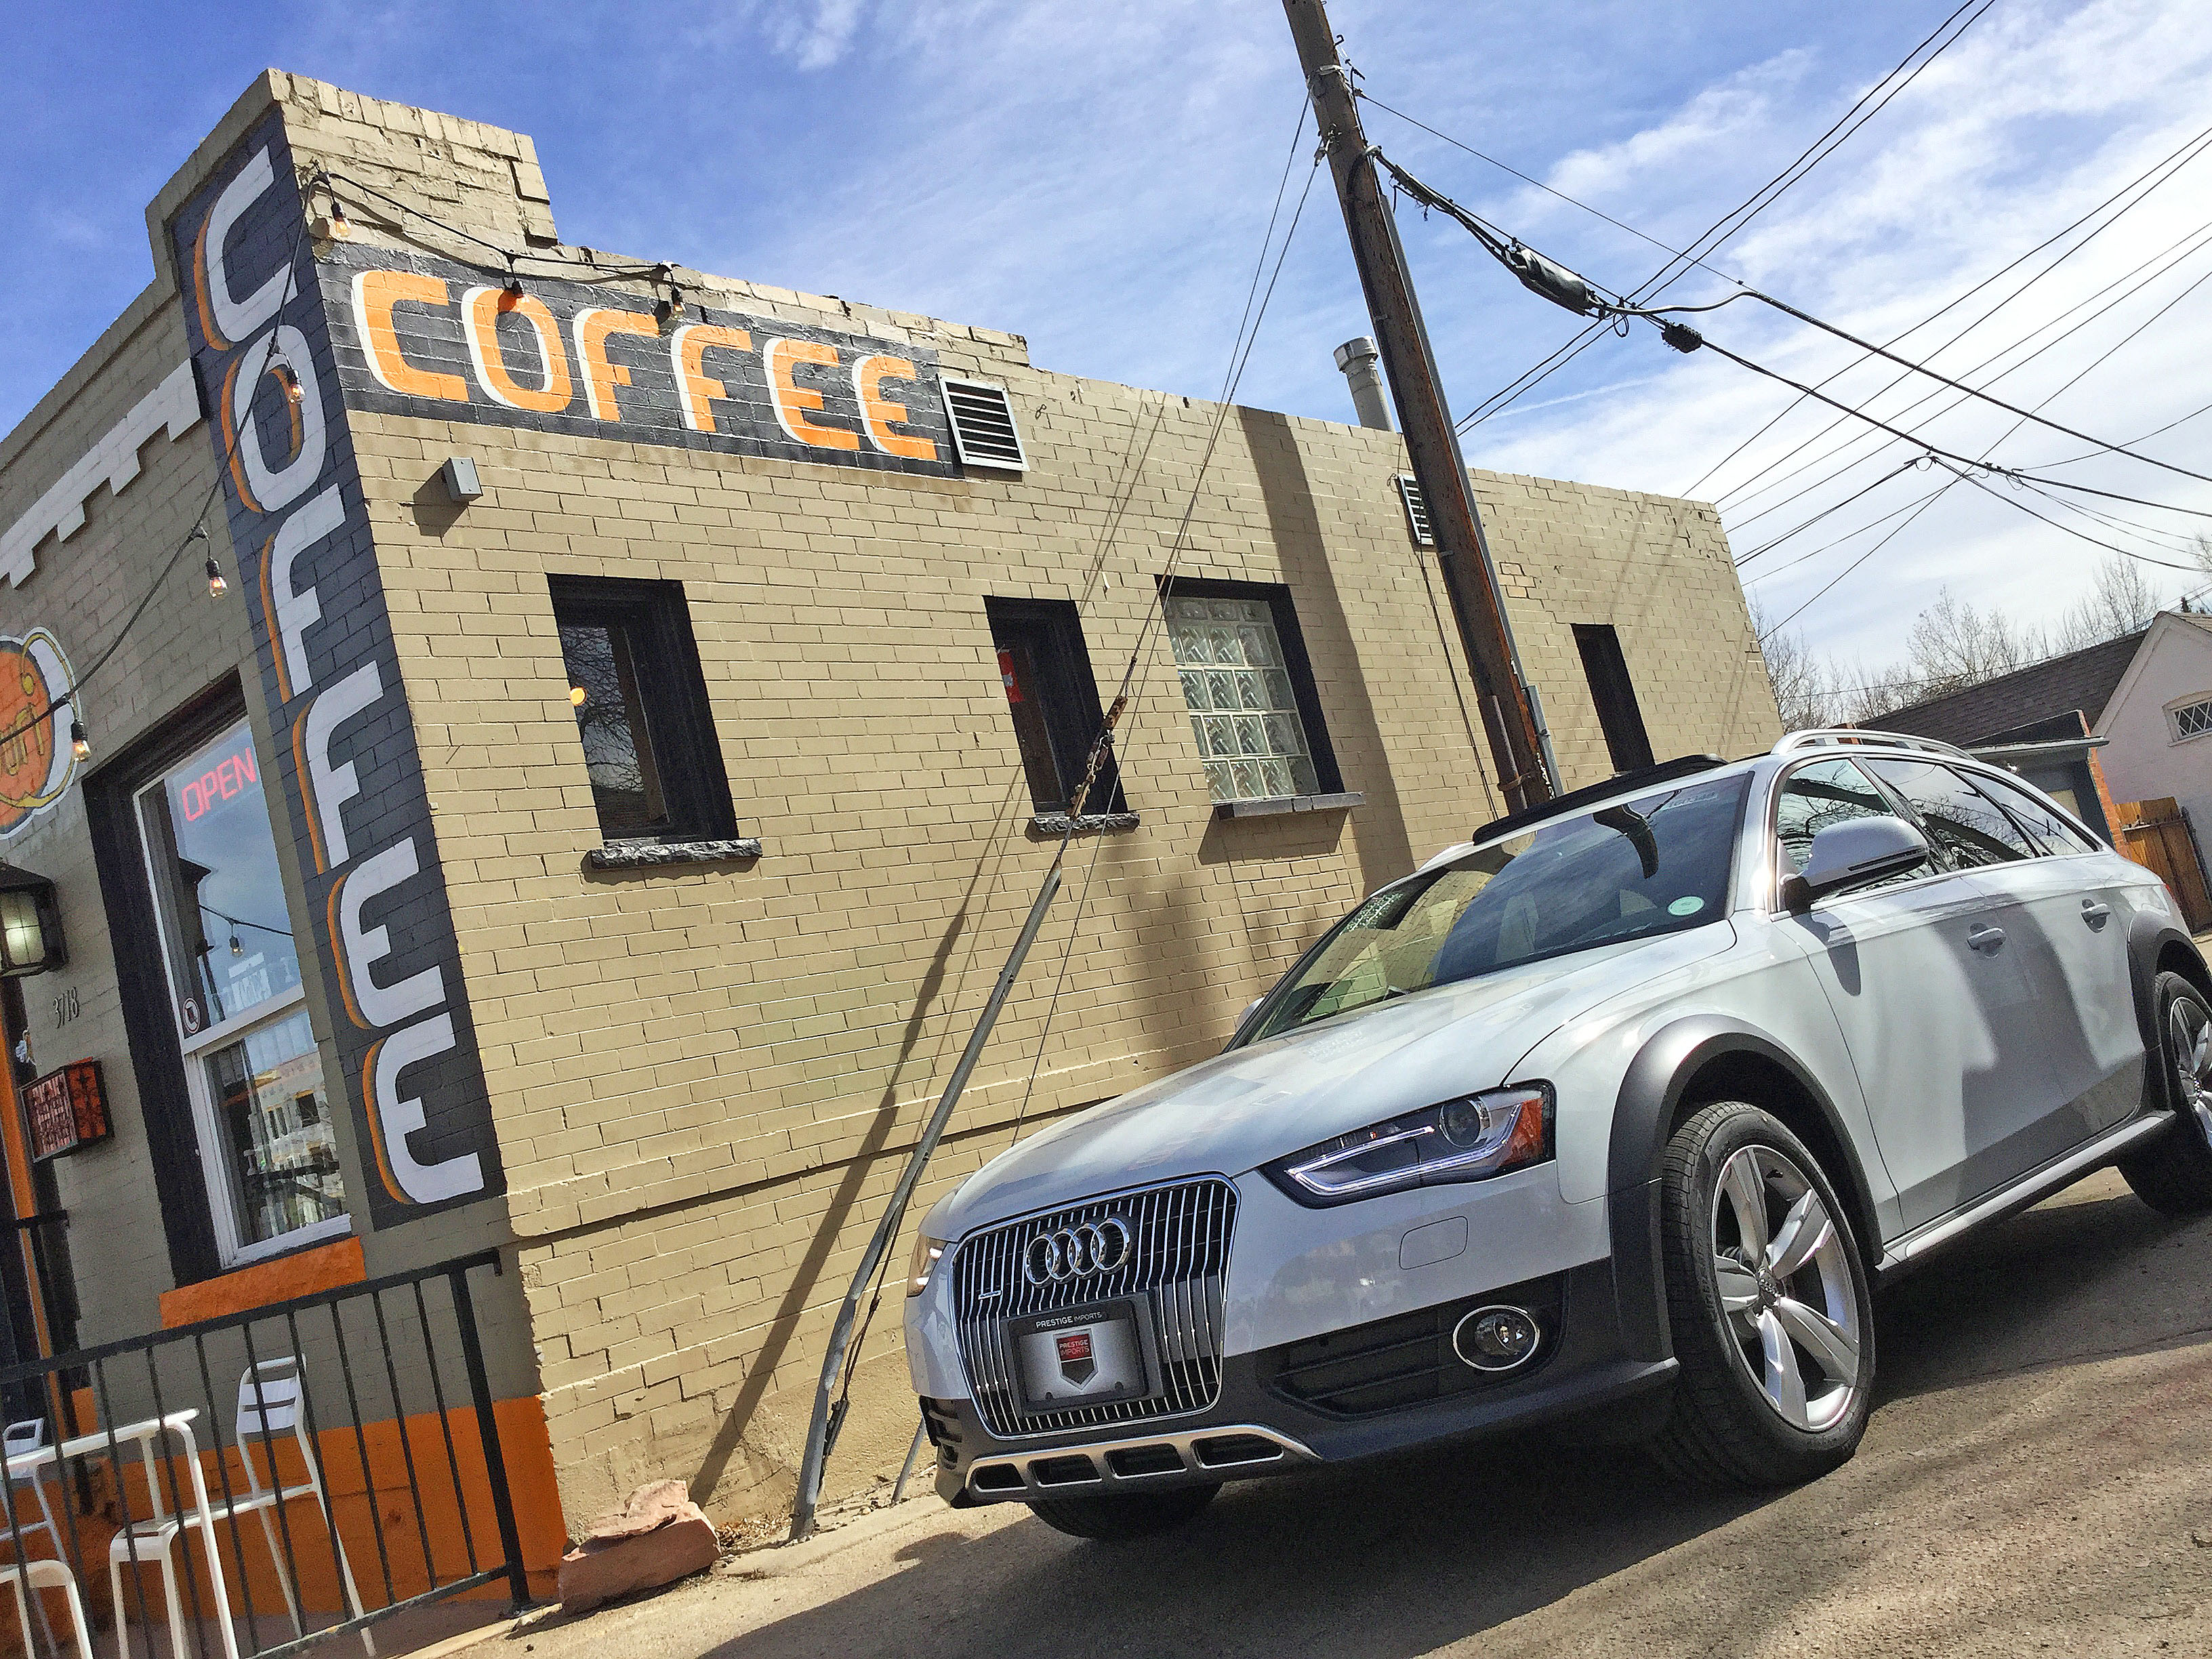 An Audi allroad parked next to a coffee shop in the Highlands, Denver, CO